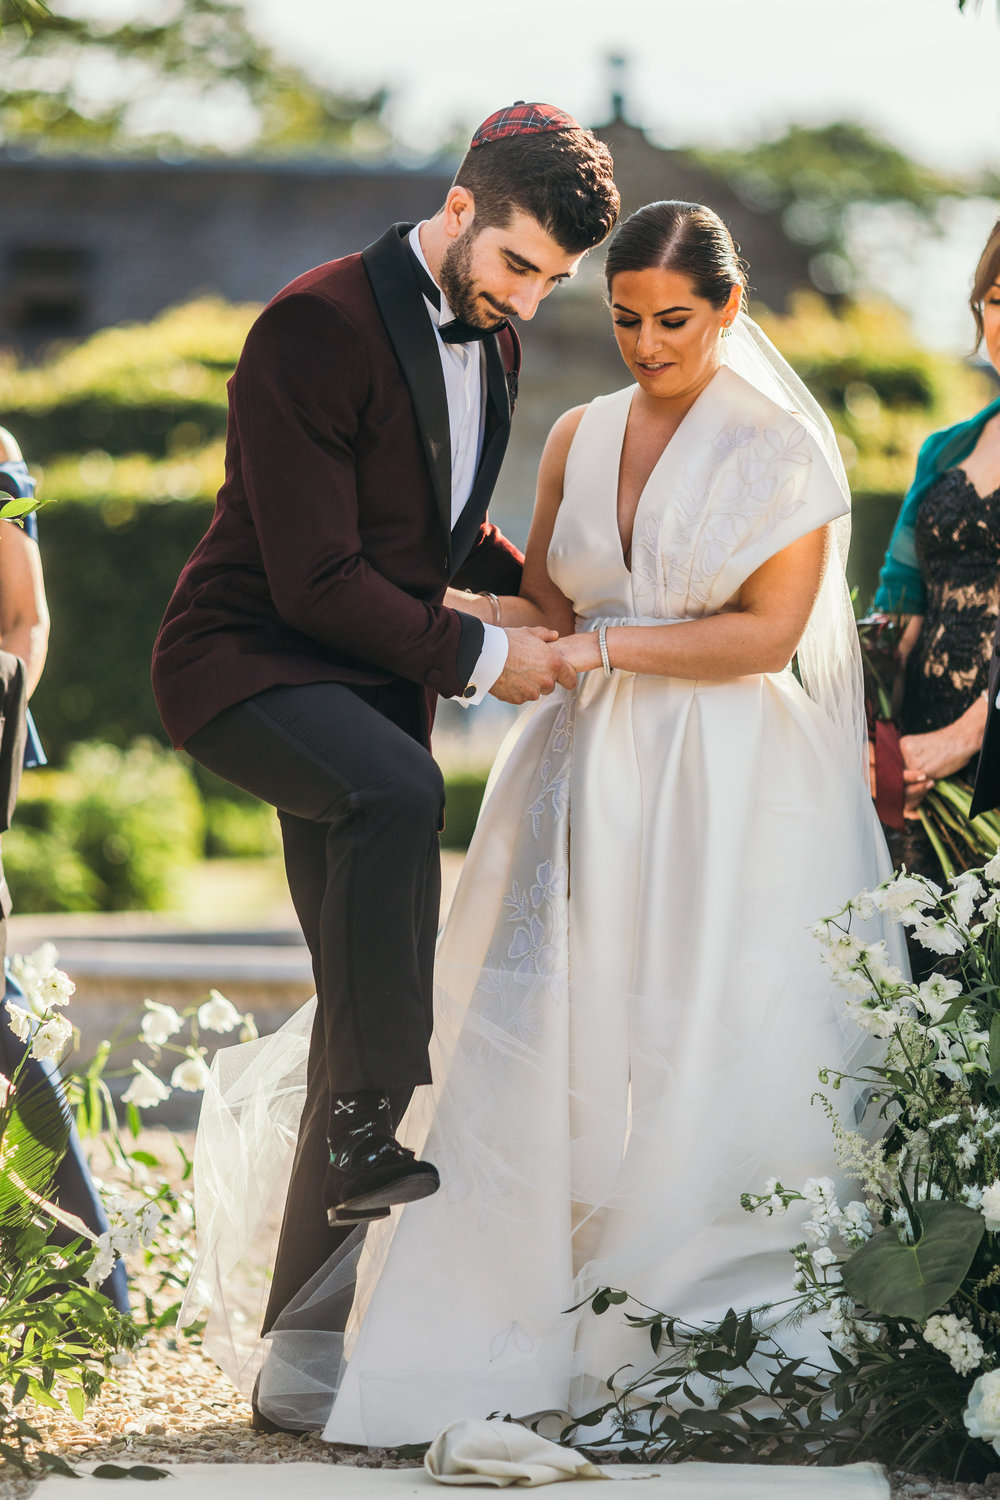 Bride and groom stepping on glass during jewish ceremony in Scotland castle outdoor wedding